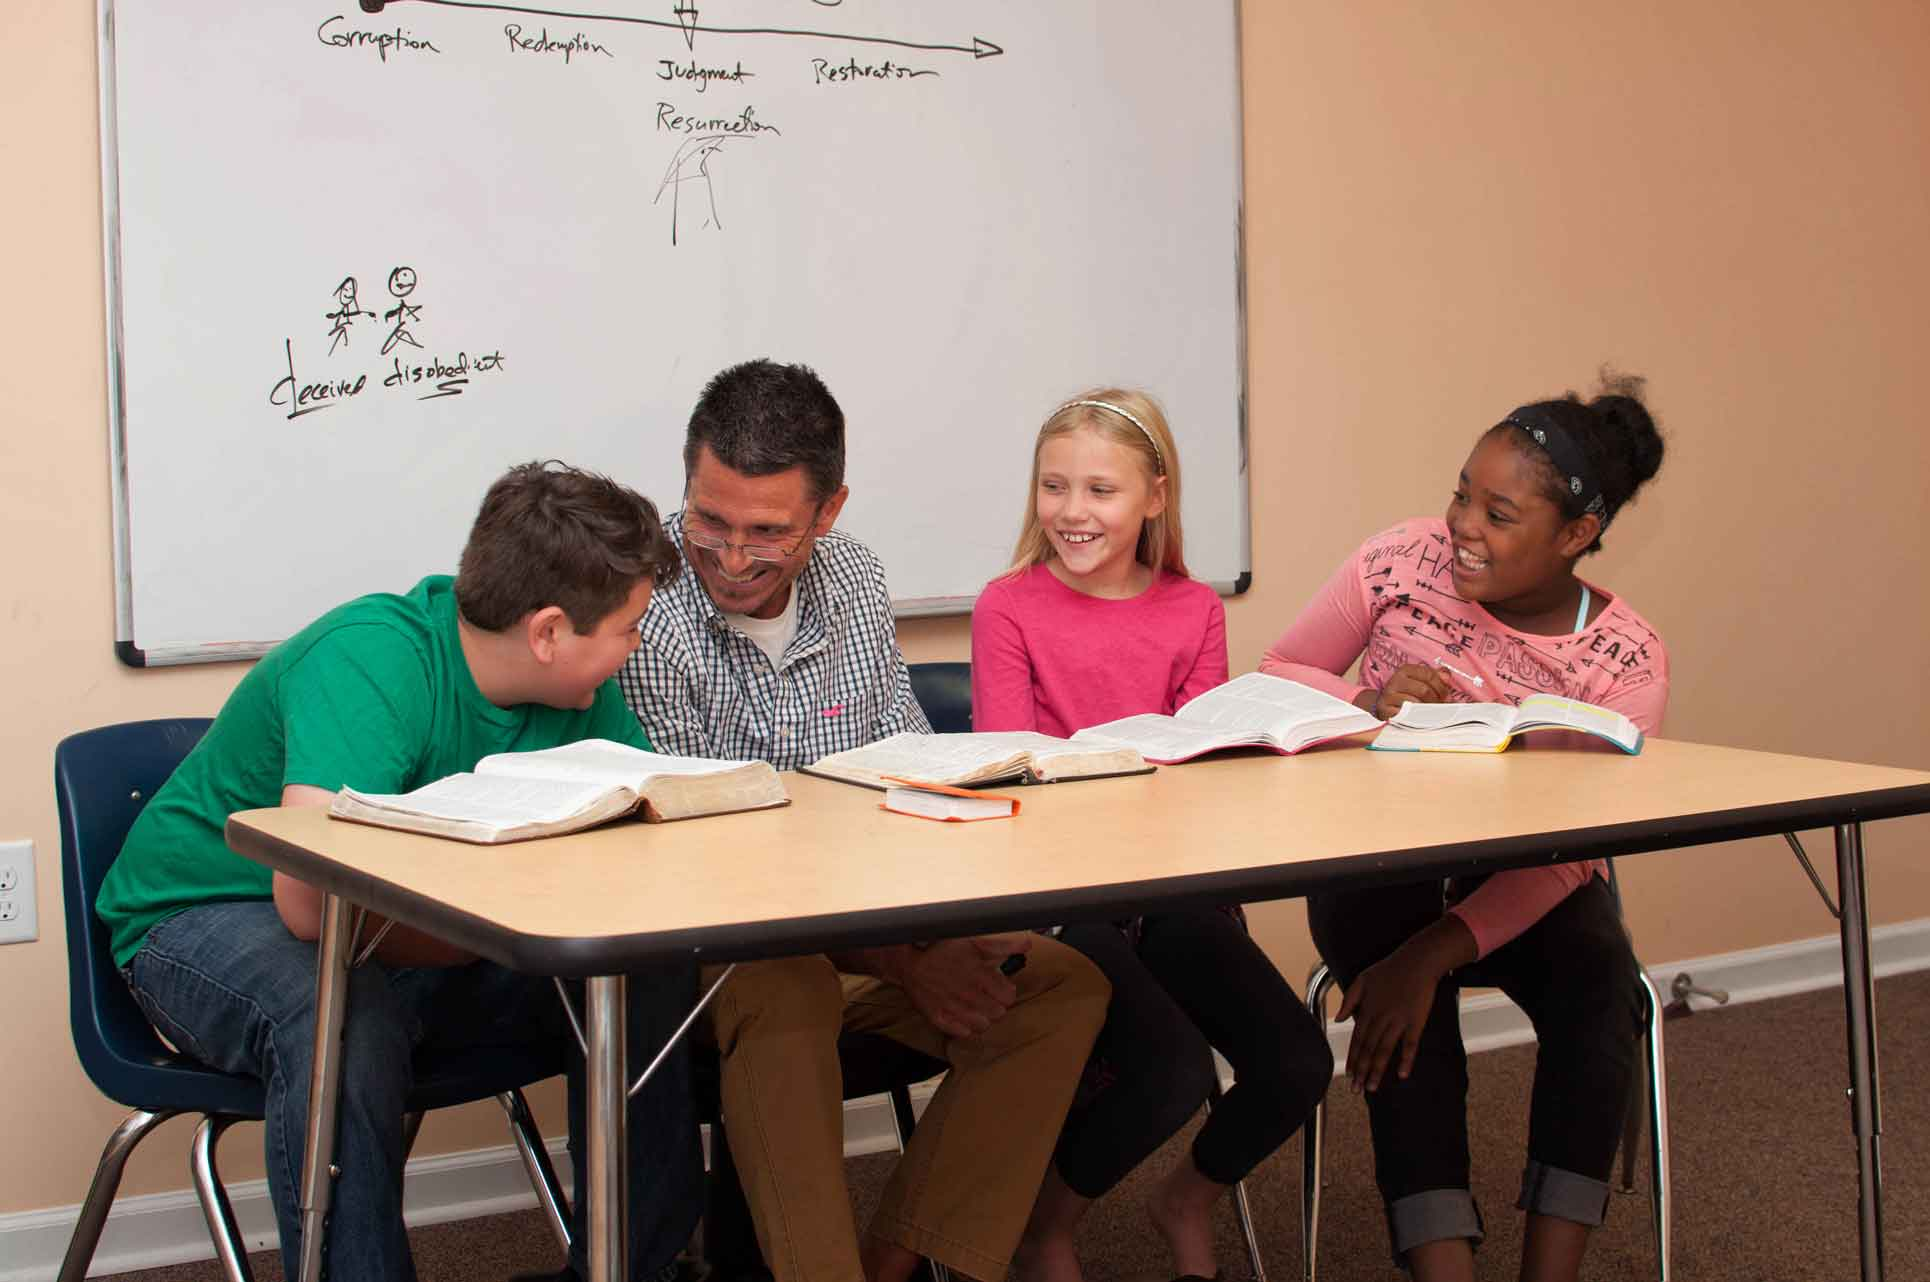 Private-Christian-Elementary-School-between-Burlington-and-Greensboro-NC-Students-Laughing-with-Teacher